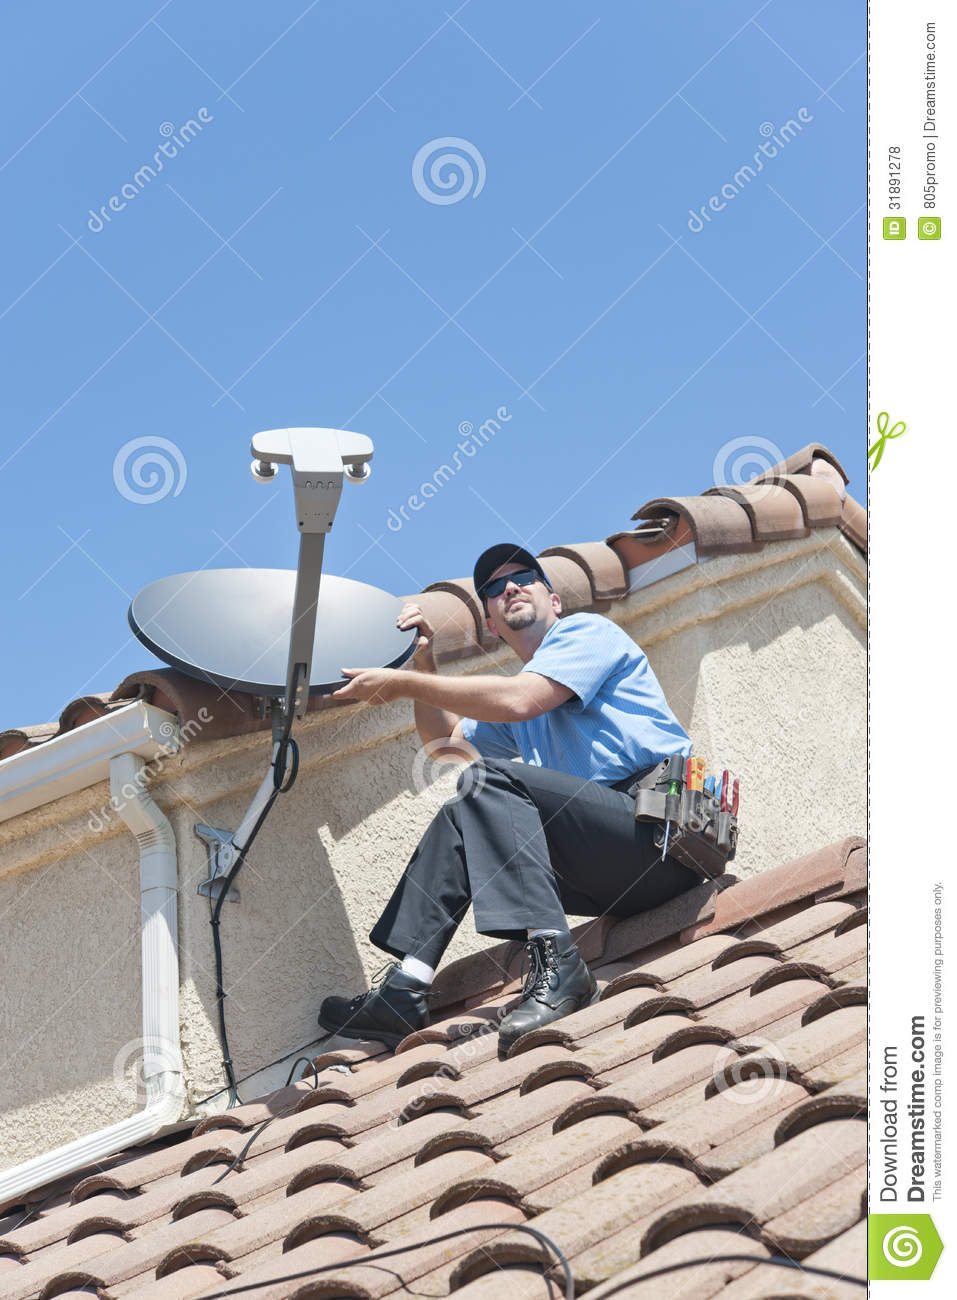 Satellite Installer On Roof Stock Photo Image Of Working